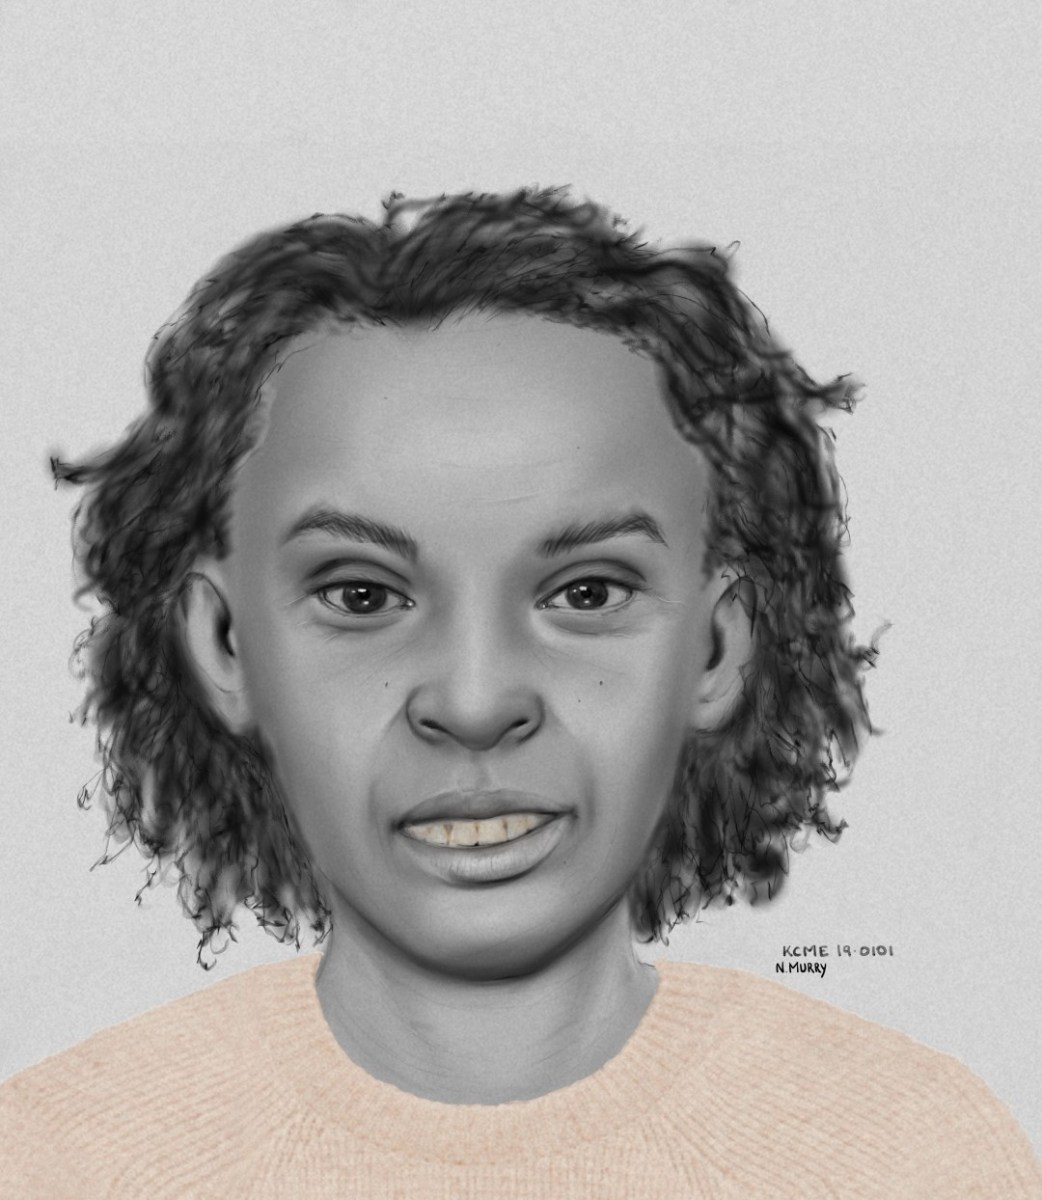 Public's help needed to identify person found dead in King County